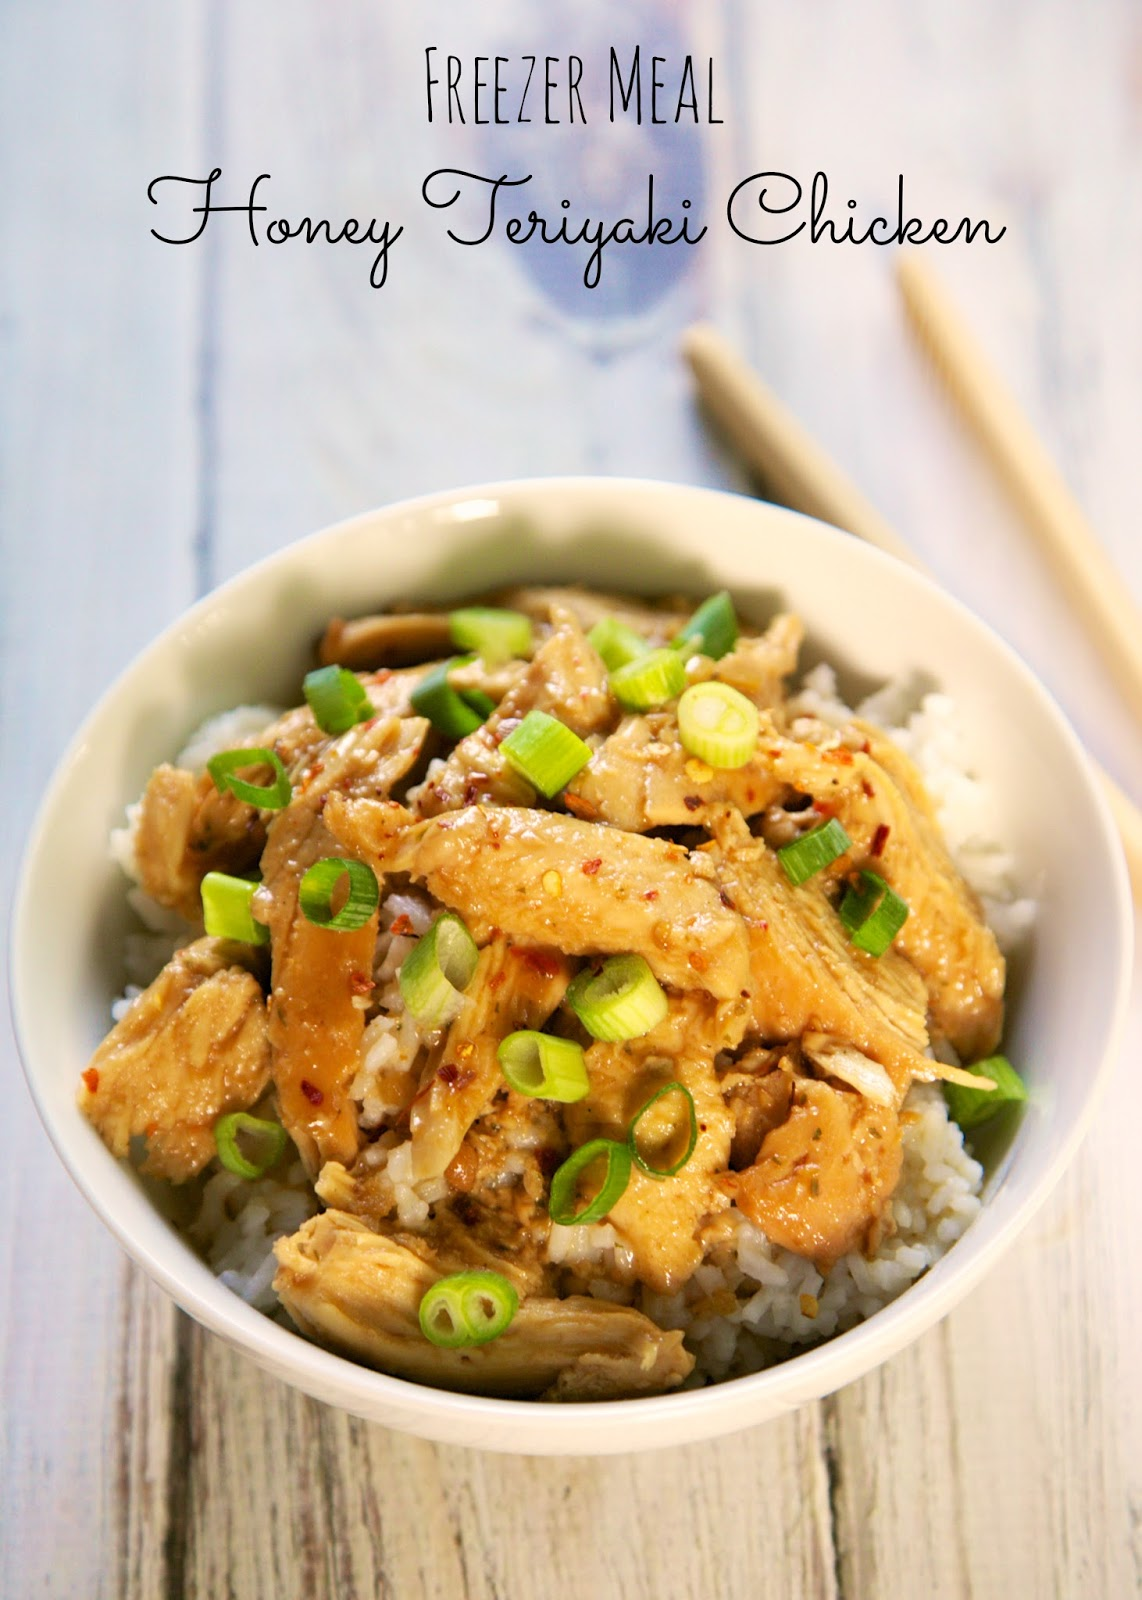 {Freezer Meal} Honey Teriyaki Chicken - chicken, honey teriyaki sauce, garlic, basil, rosemary, chicken broth and brown sugar - throw everything in a freezer bag and freeze until ready to cook. Can cook frozen. SO easy and super delicious. Serve over rice for a complete meal!